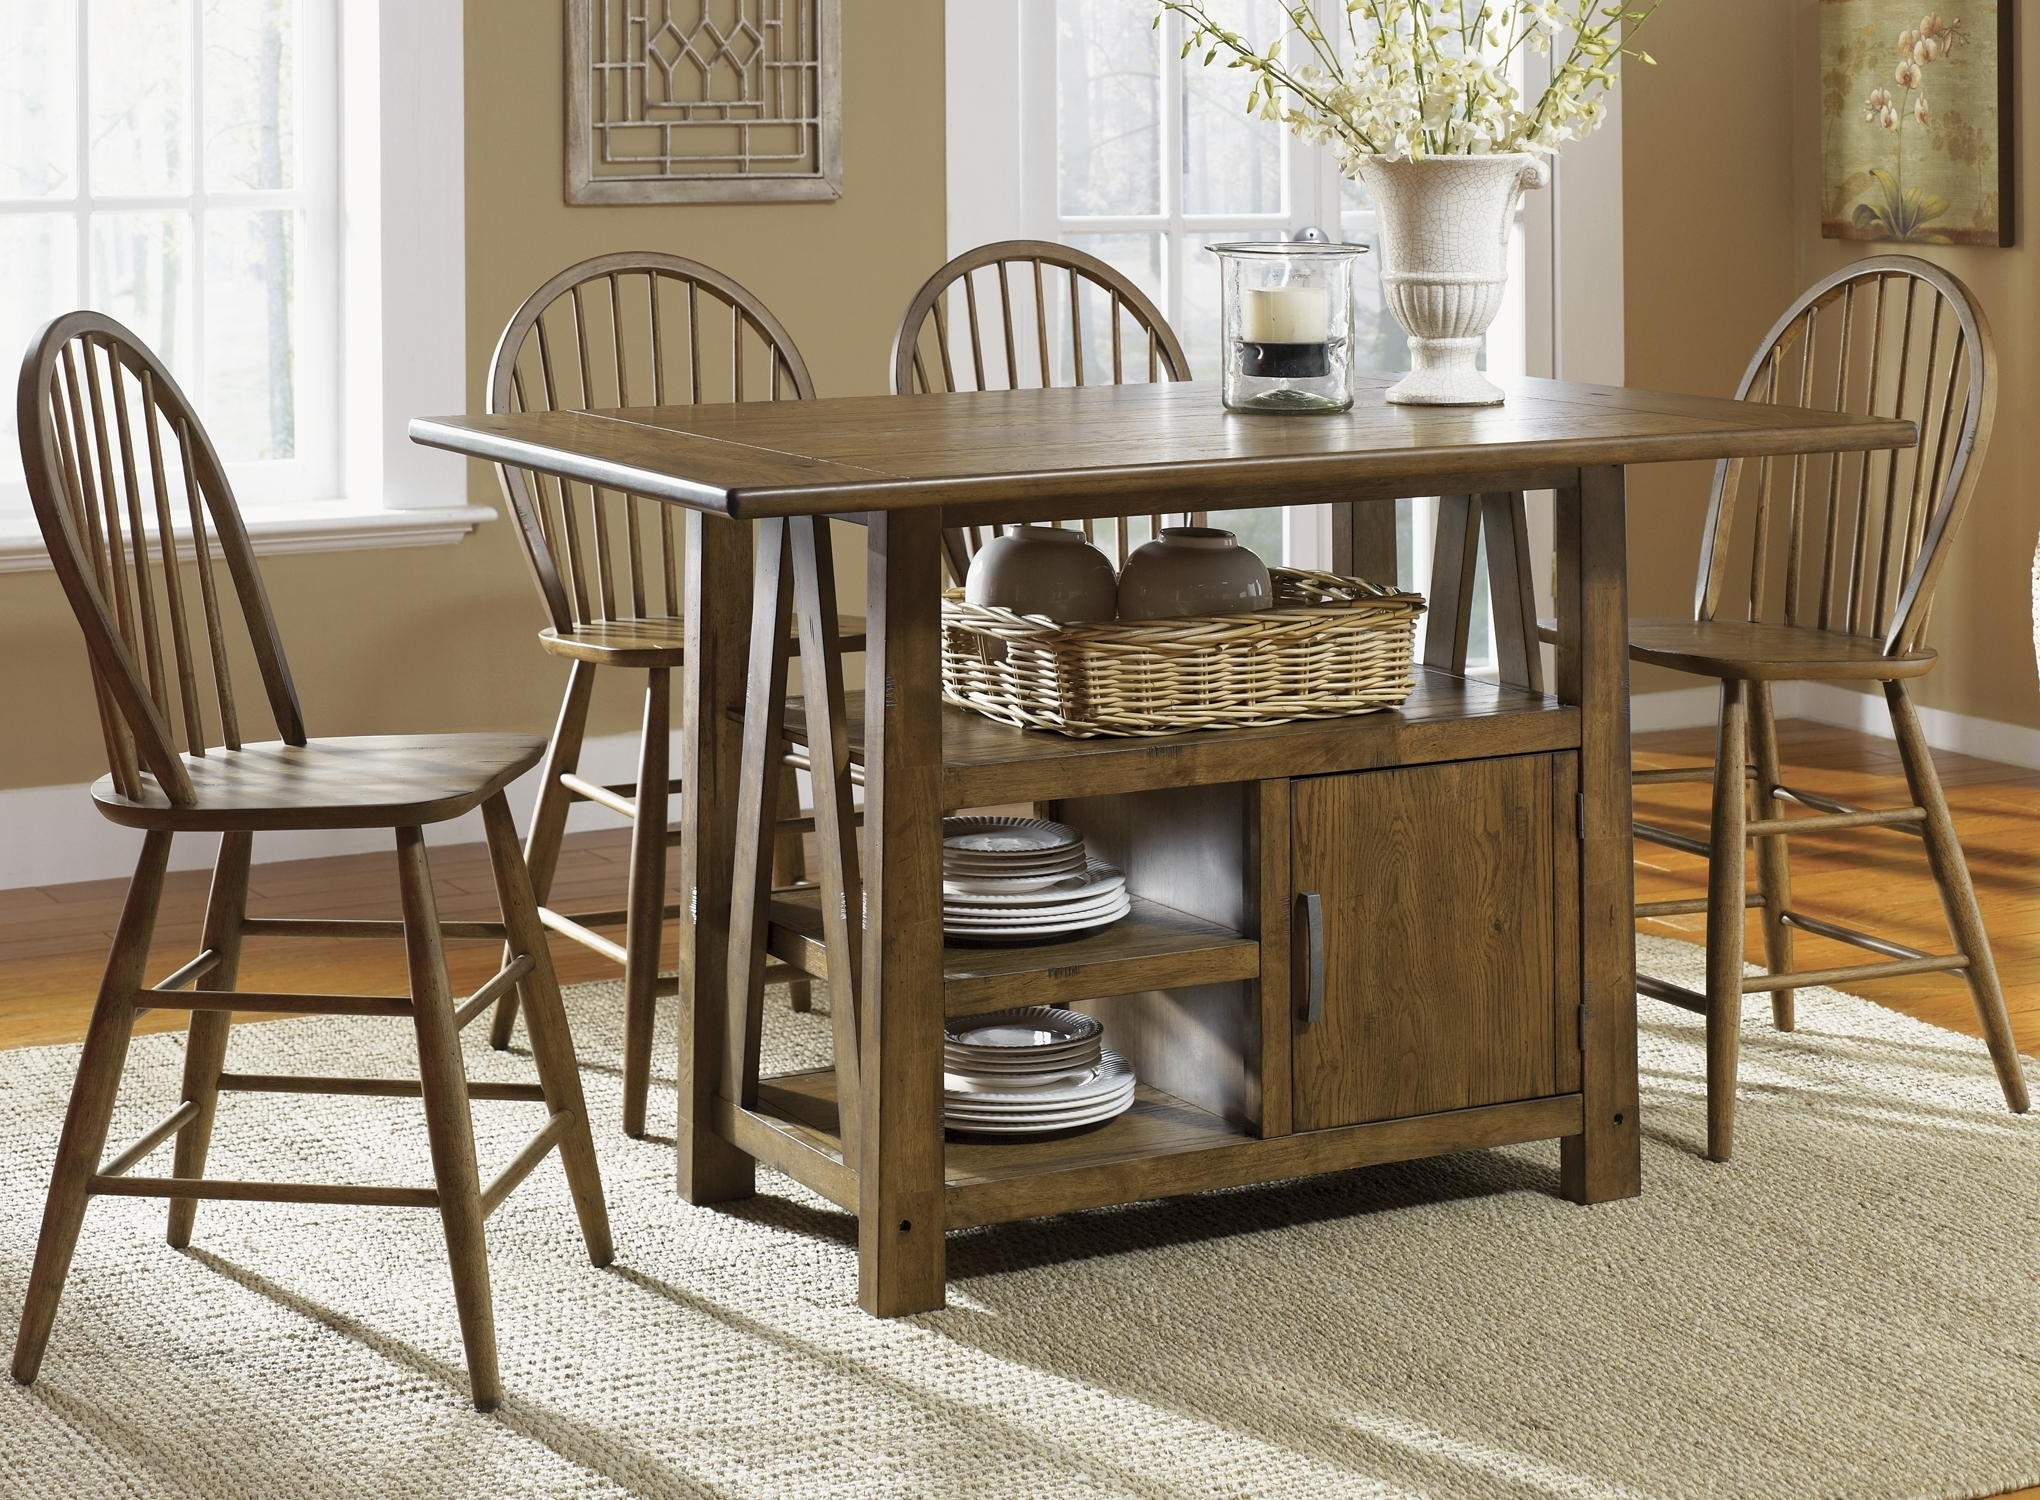 5 Piece Island Pub Table And Windsor Back Counter Chairs Set In Preferred Market 5 Piece Counter Sets (View 4 of 25)